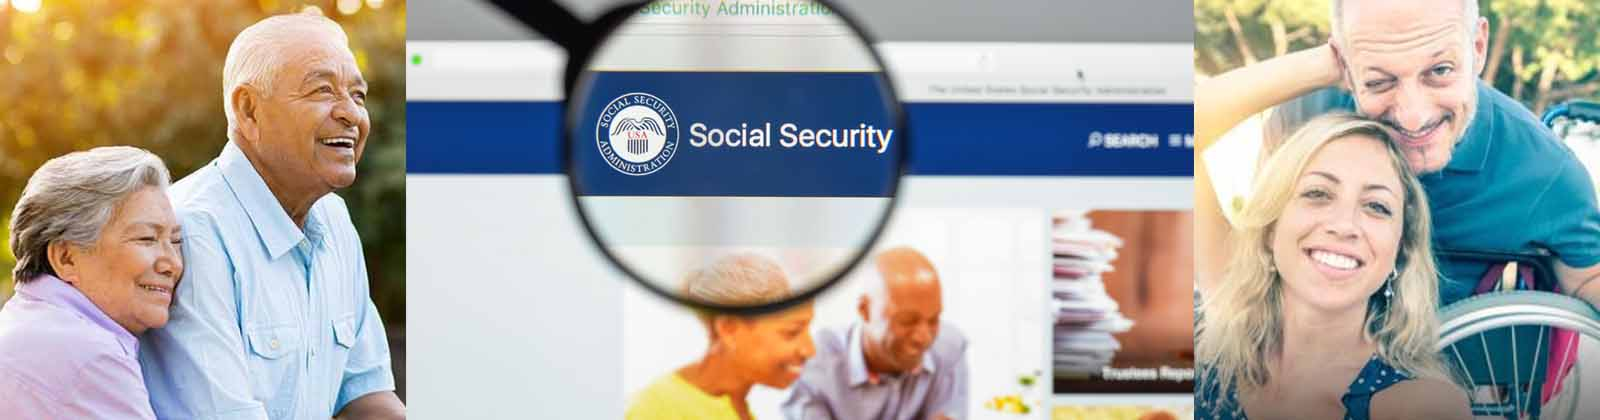 Social Security Services